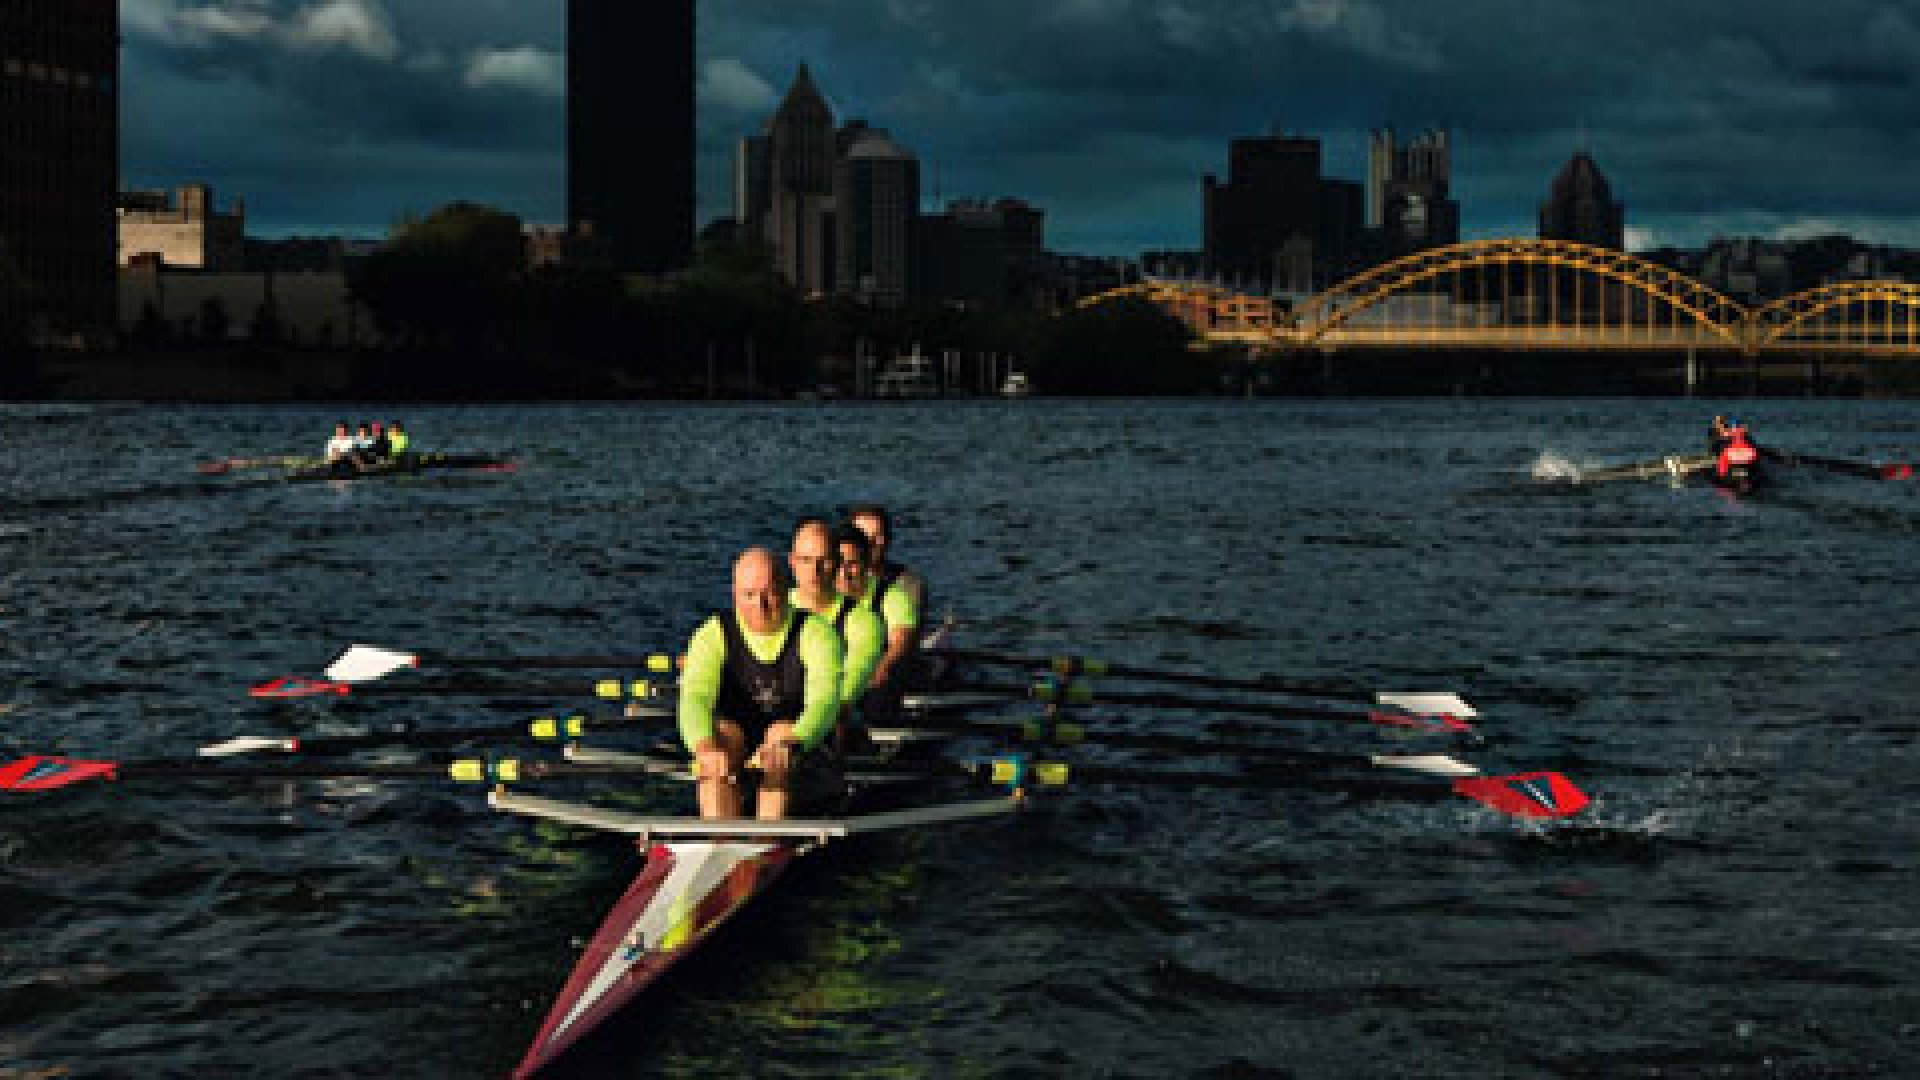 CEO Passions: Rowing